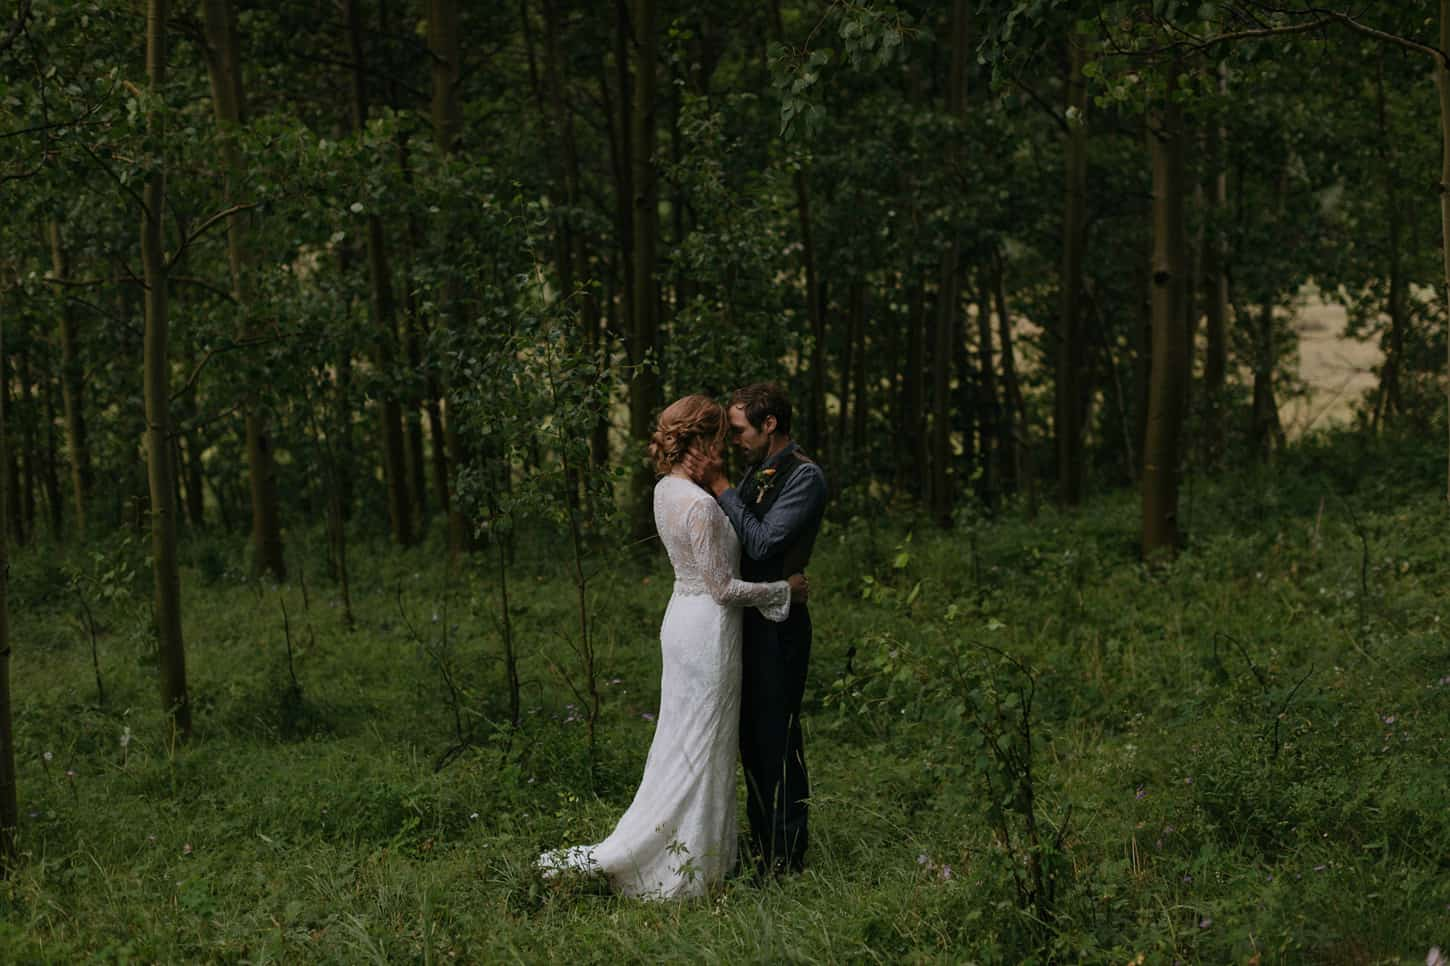 elopement in an aspen grove in colorado forest